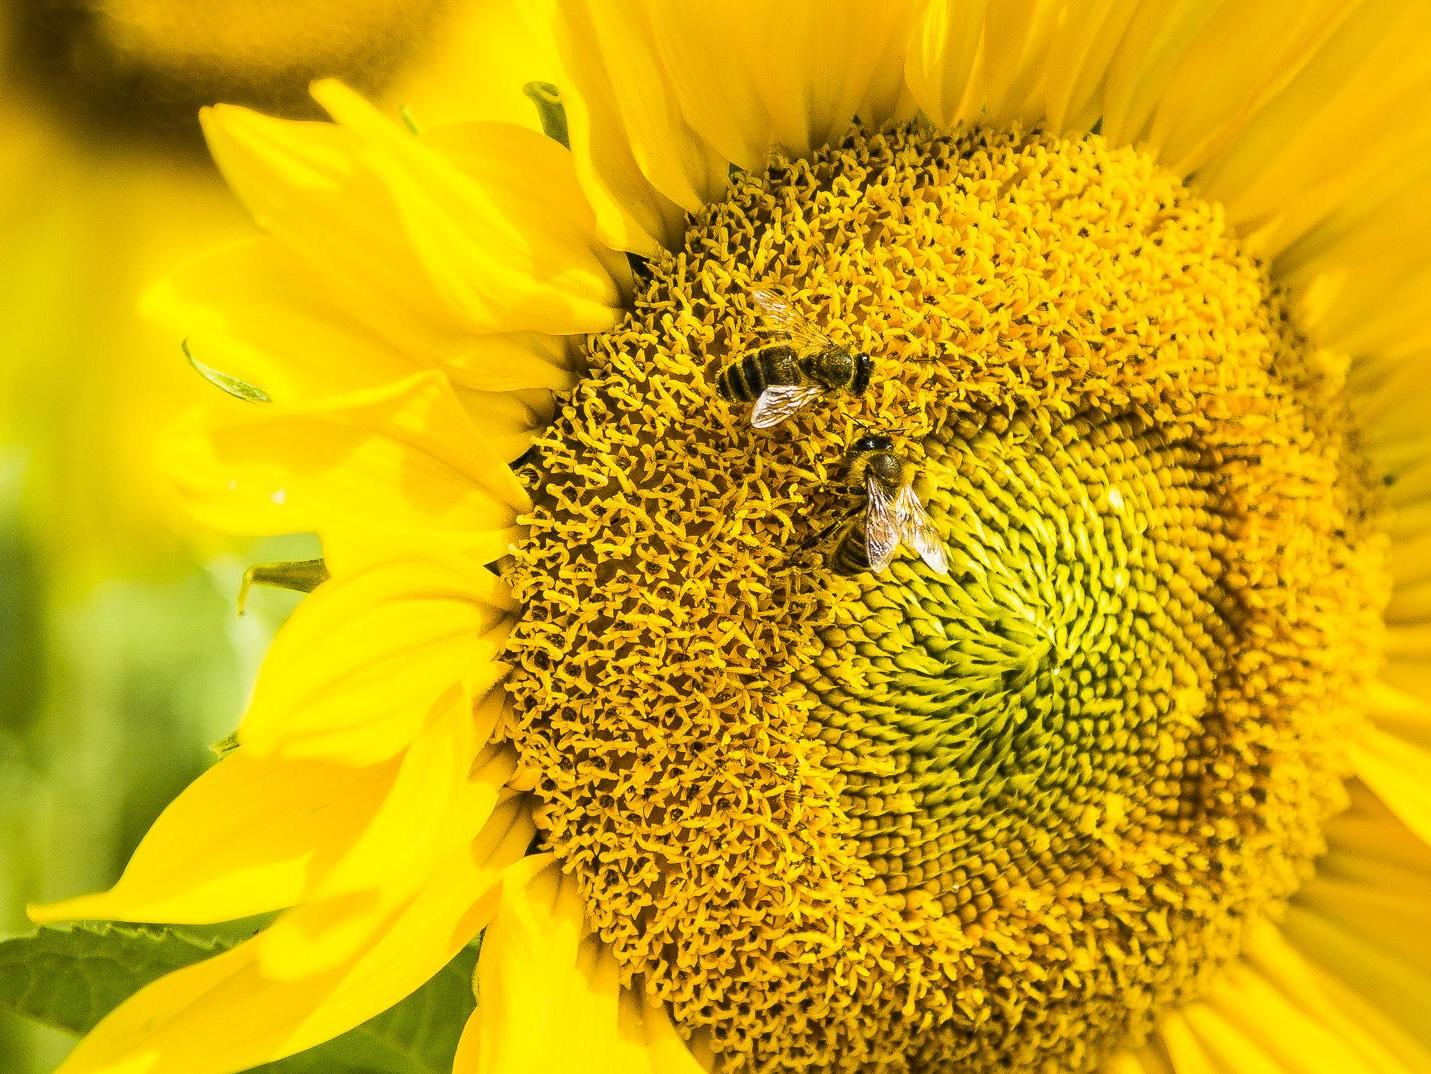 Bees Have Human Like Ability To Link Symbols To Numbers